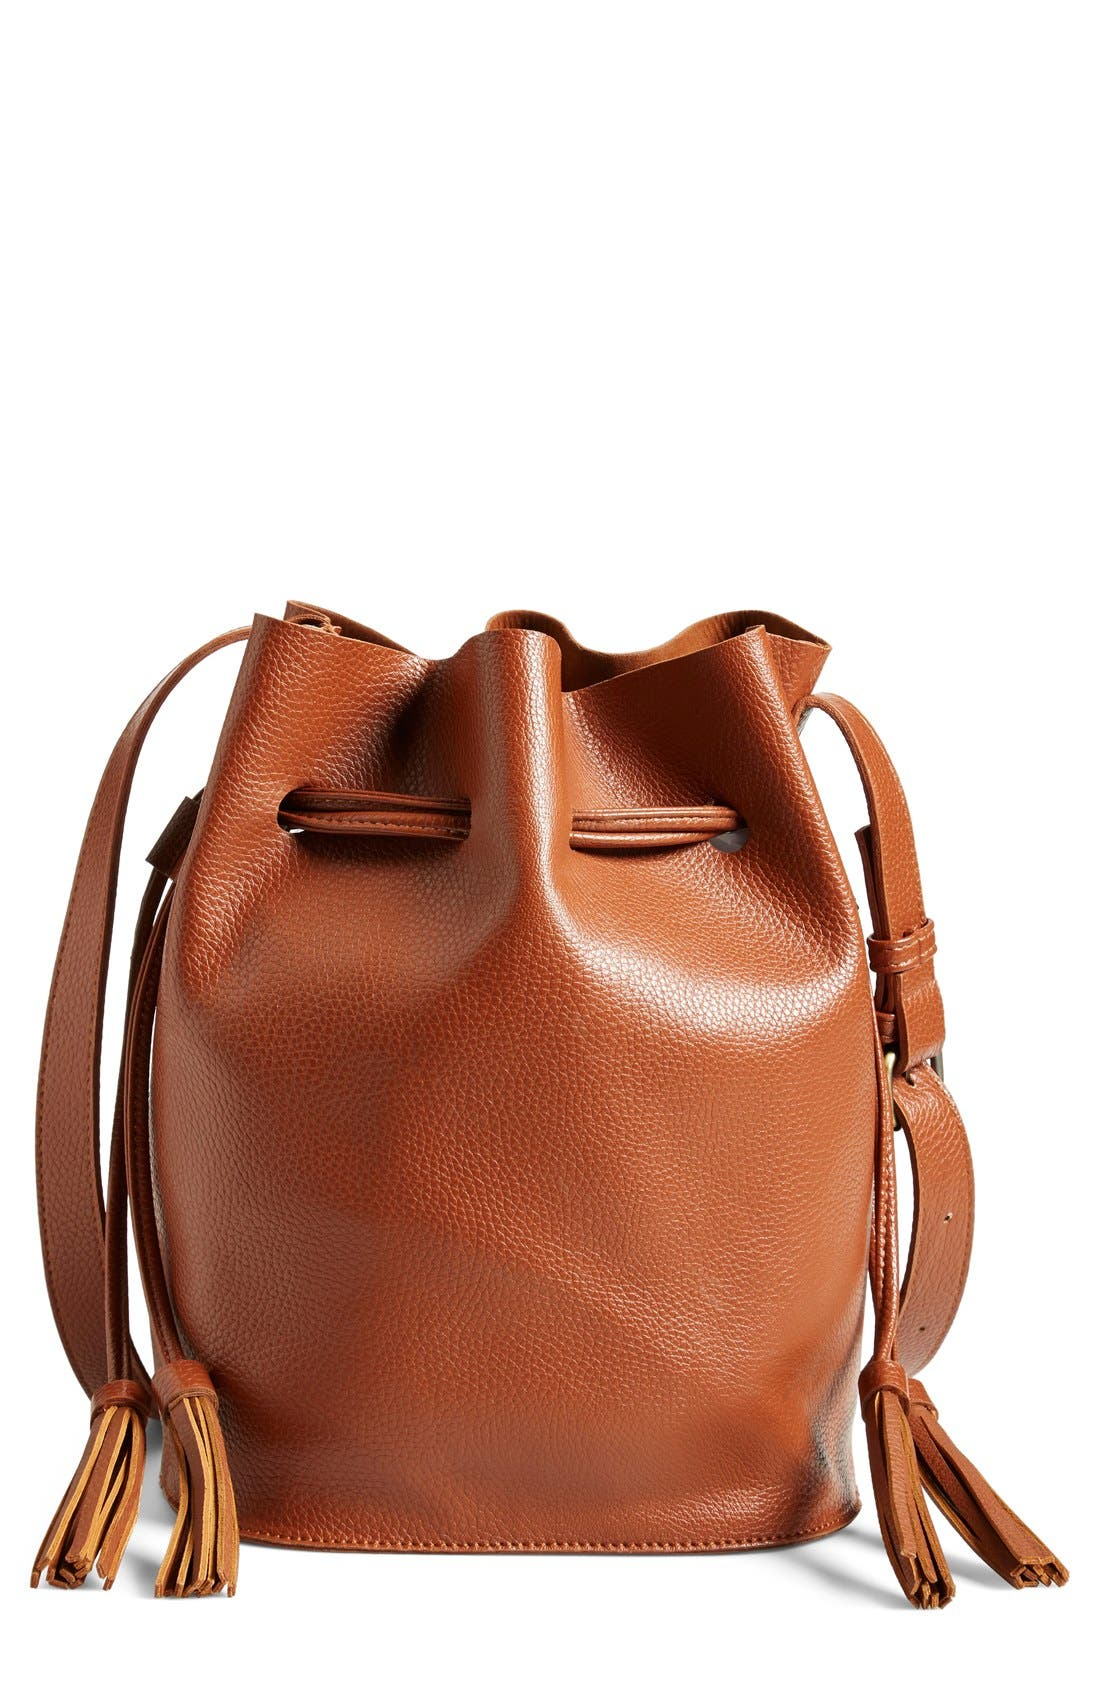 Main Image - Street Level Faux Leather Bucket Bag (Online Only)